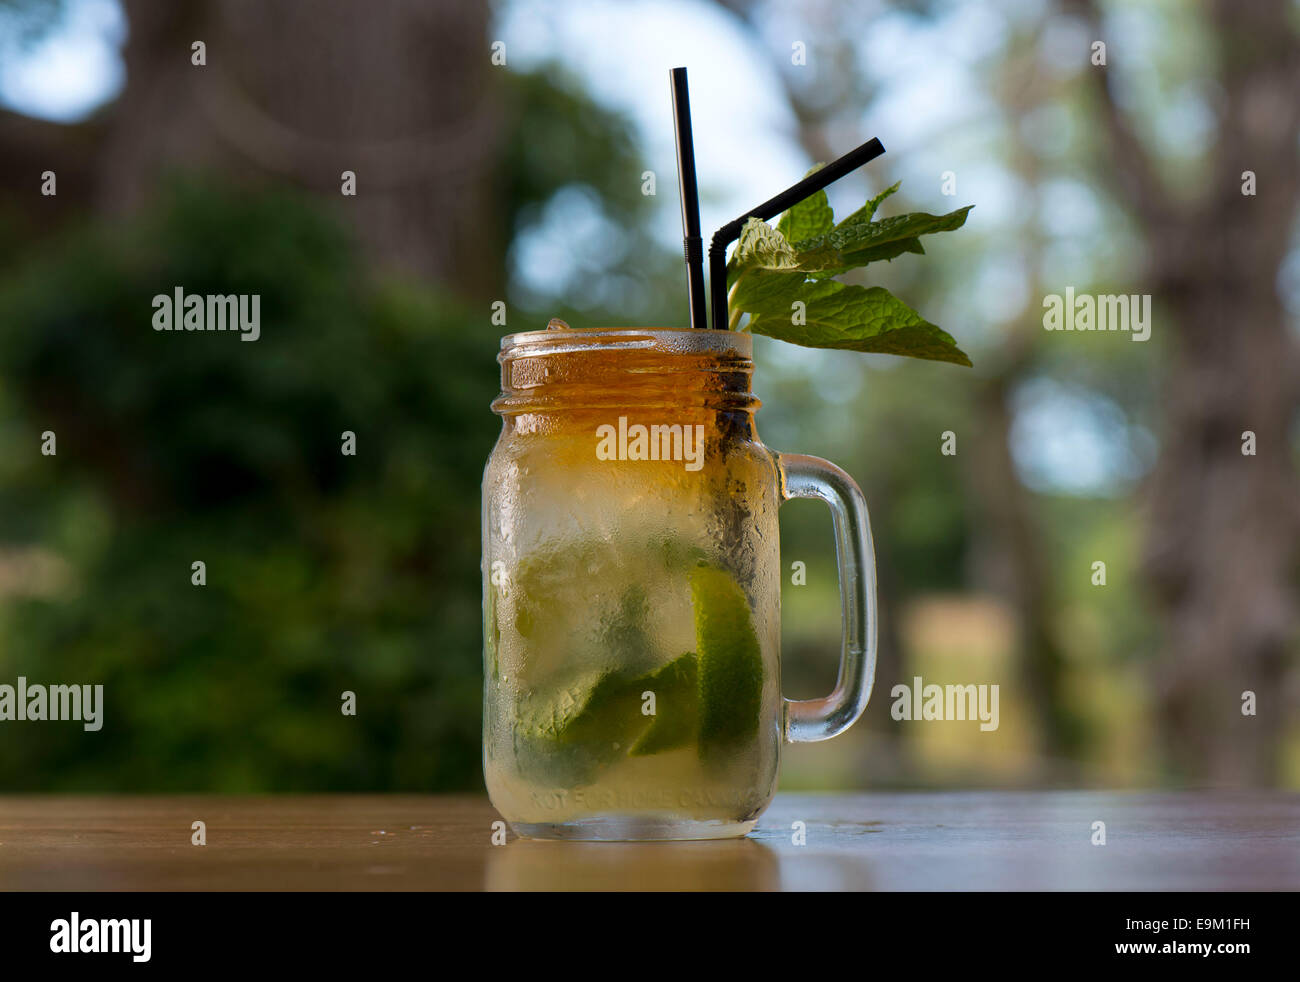 A mojito rum cocktail with a green background. - Stock Image